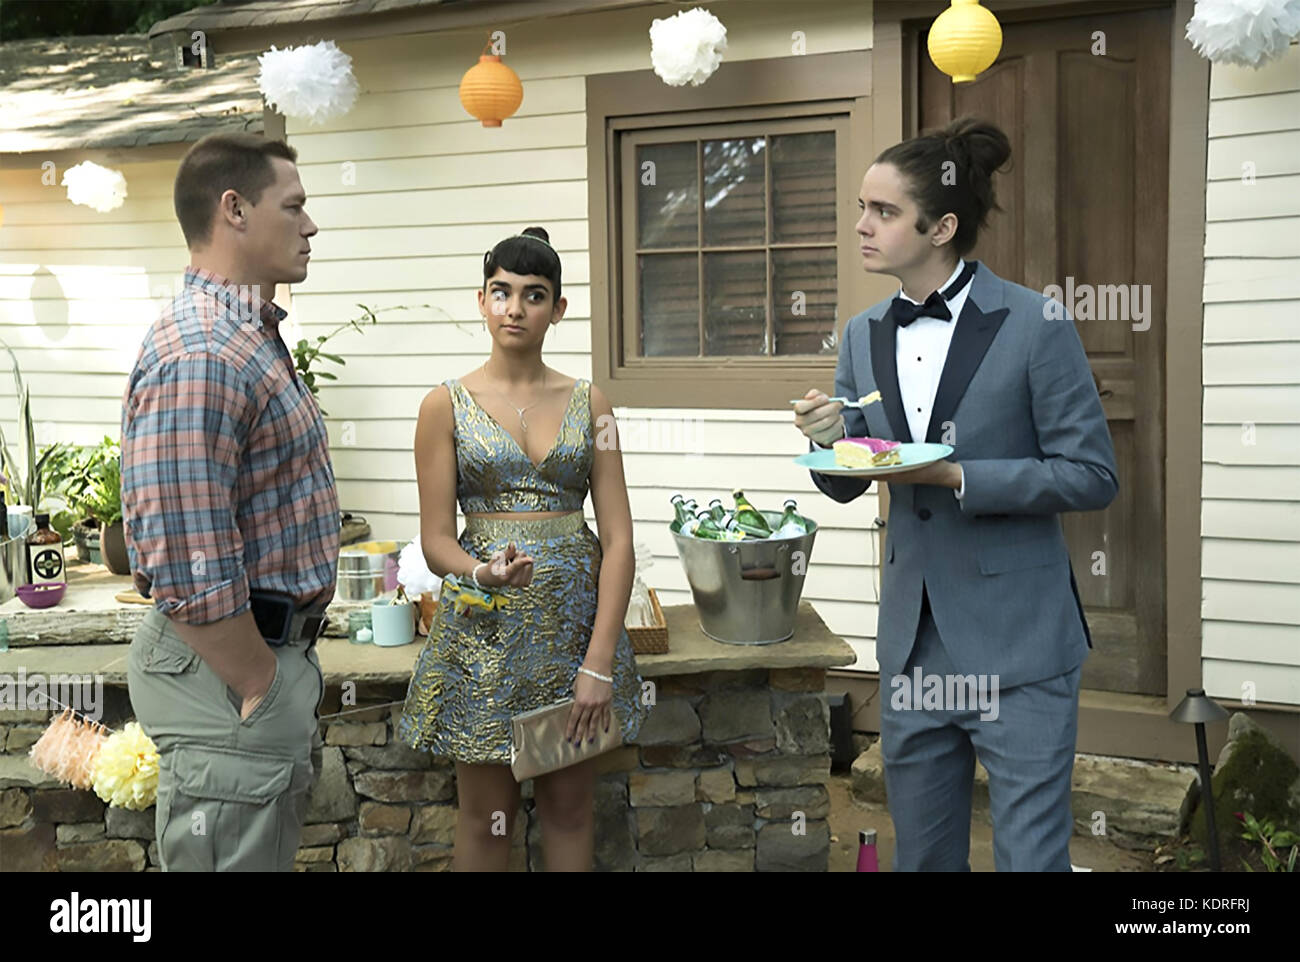 BLOCKERS 2018 Point Grey Pictures film with from left: John Cena, Geraldine Viswanathan, Miles Robbins - Stock Image